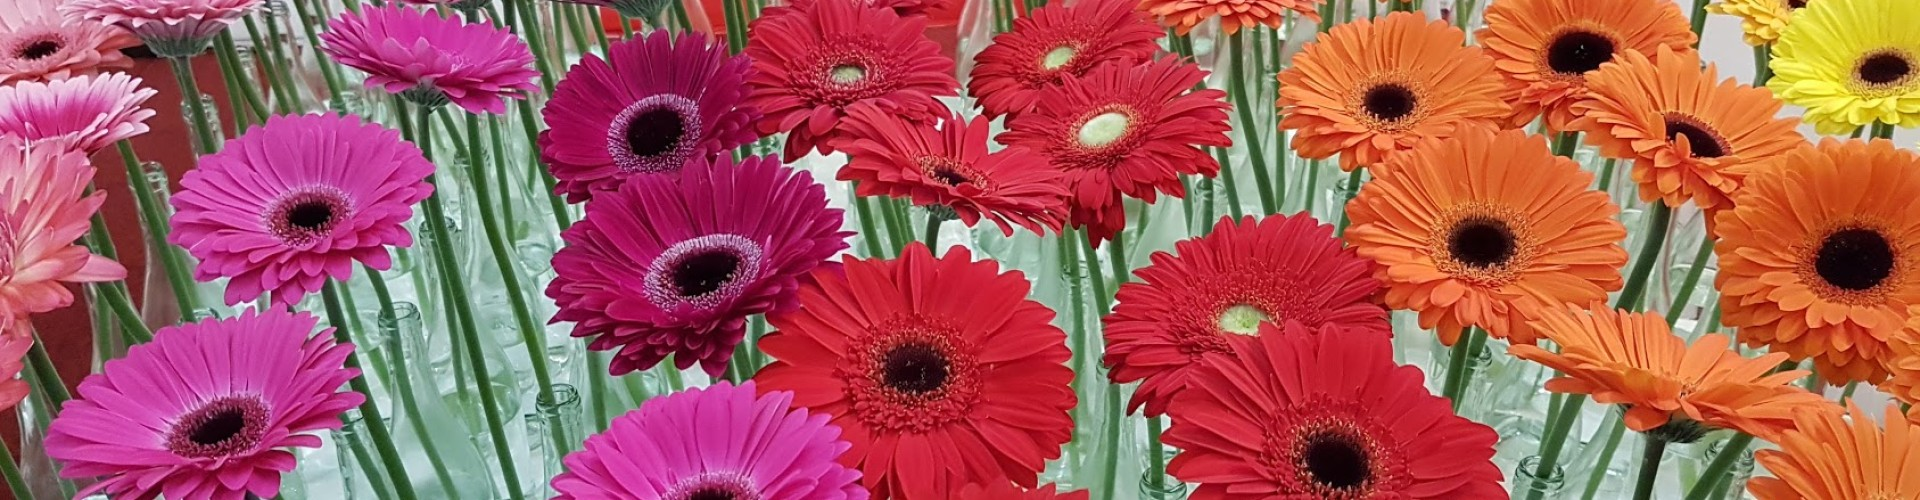 Gerbera's flower arrangement at Trade Fair exhibition